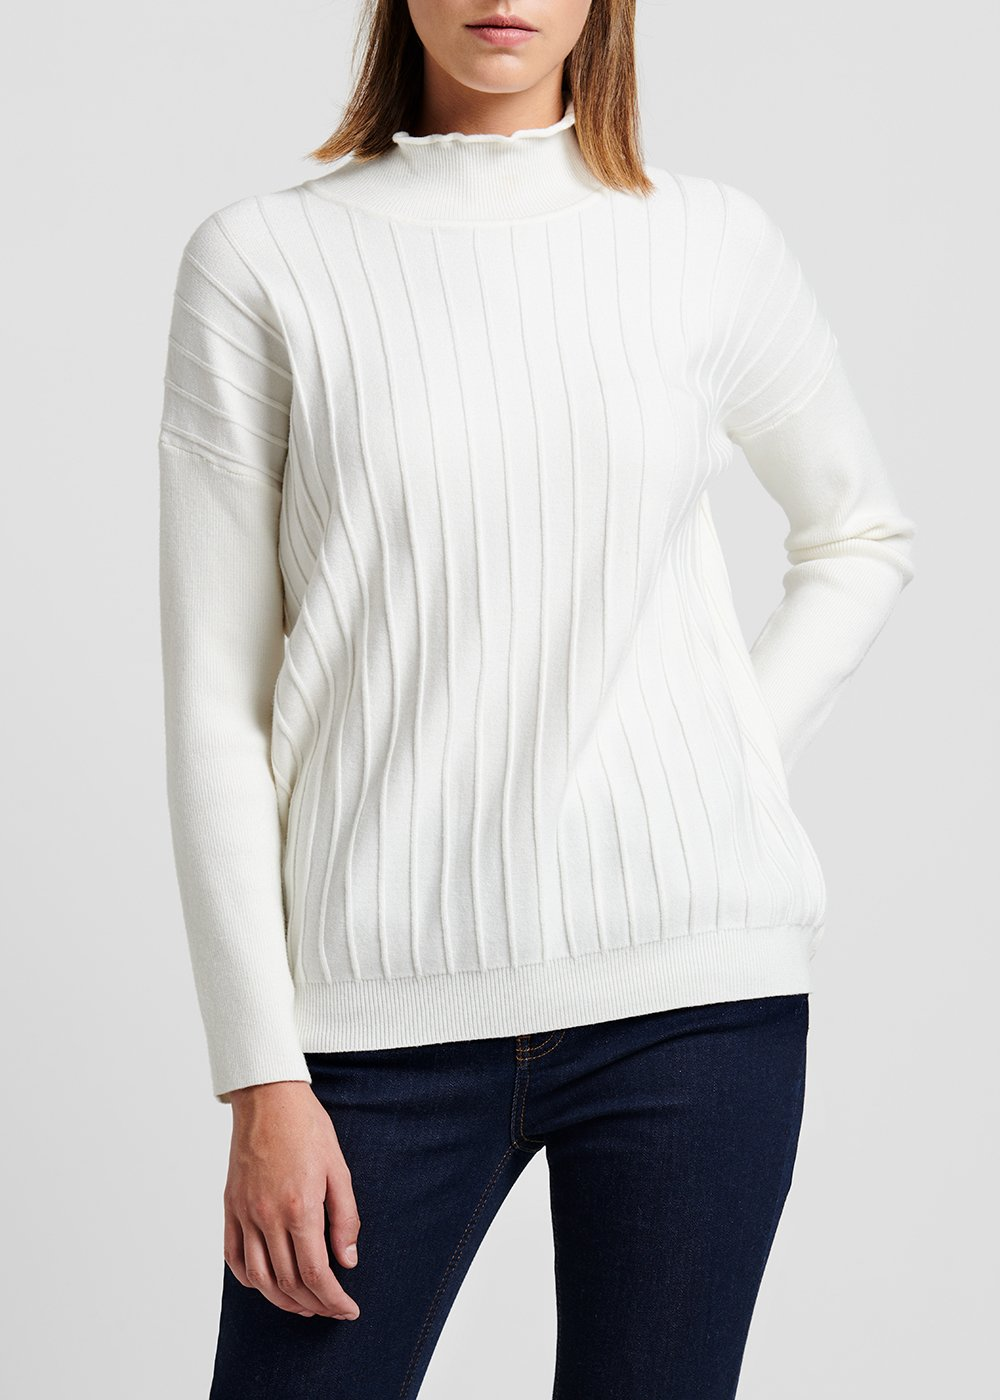 Turtleneck sweater in raw viscose - White - Woman